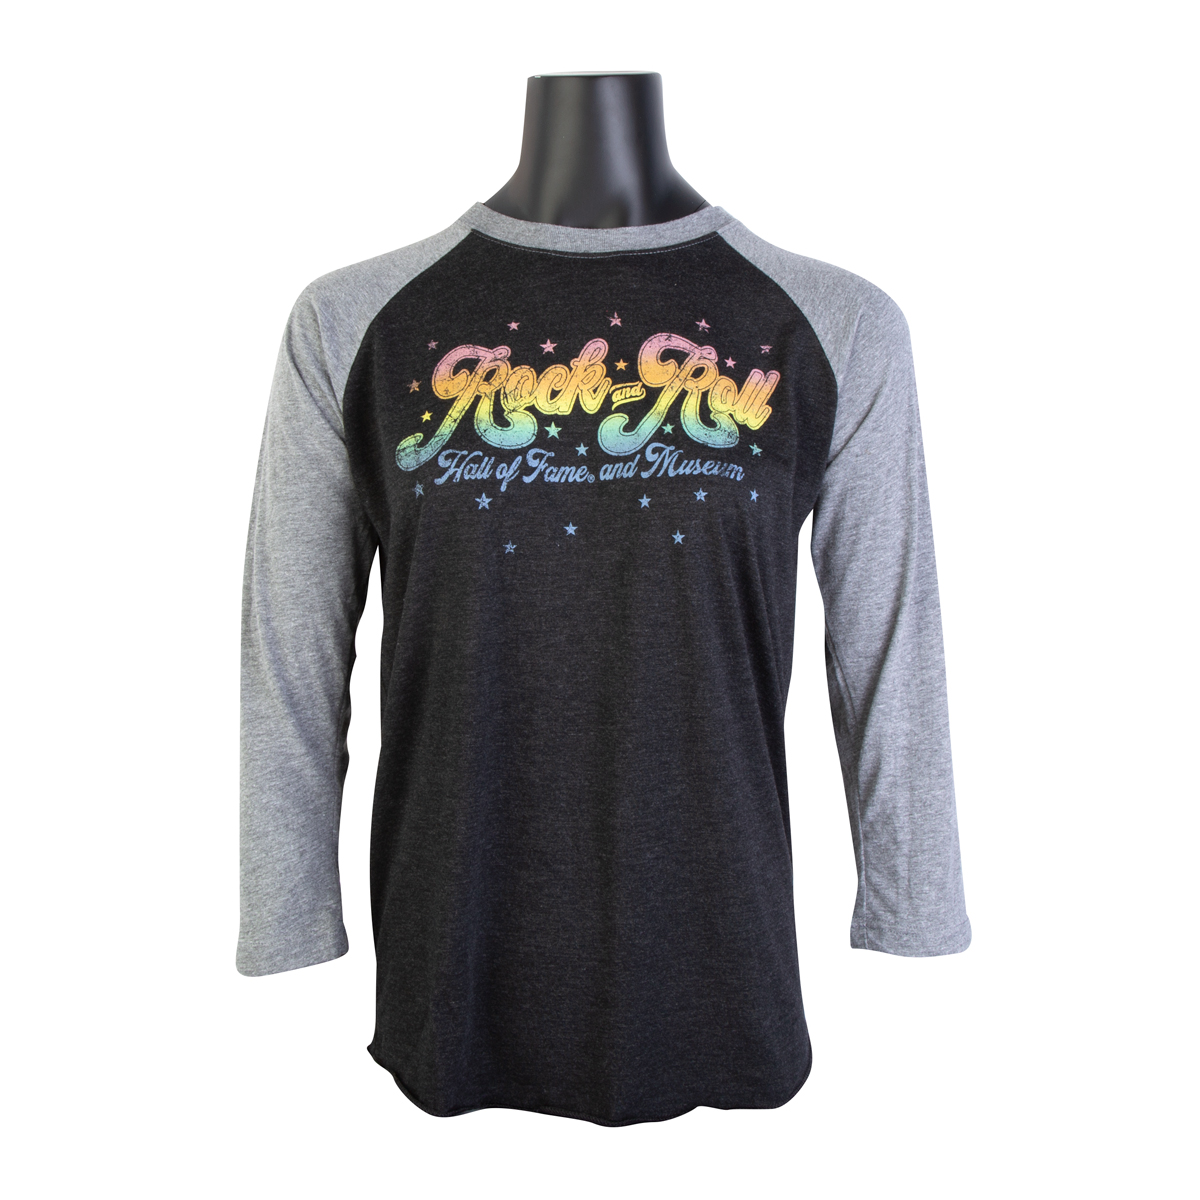 Rock & Roll Hall Of Fame Raglan